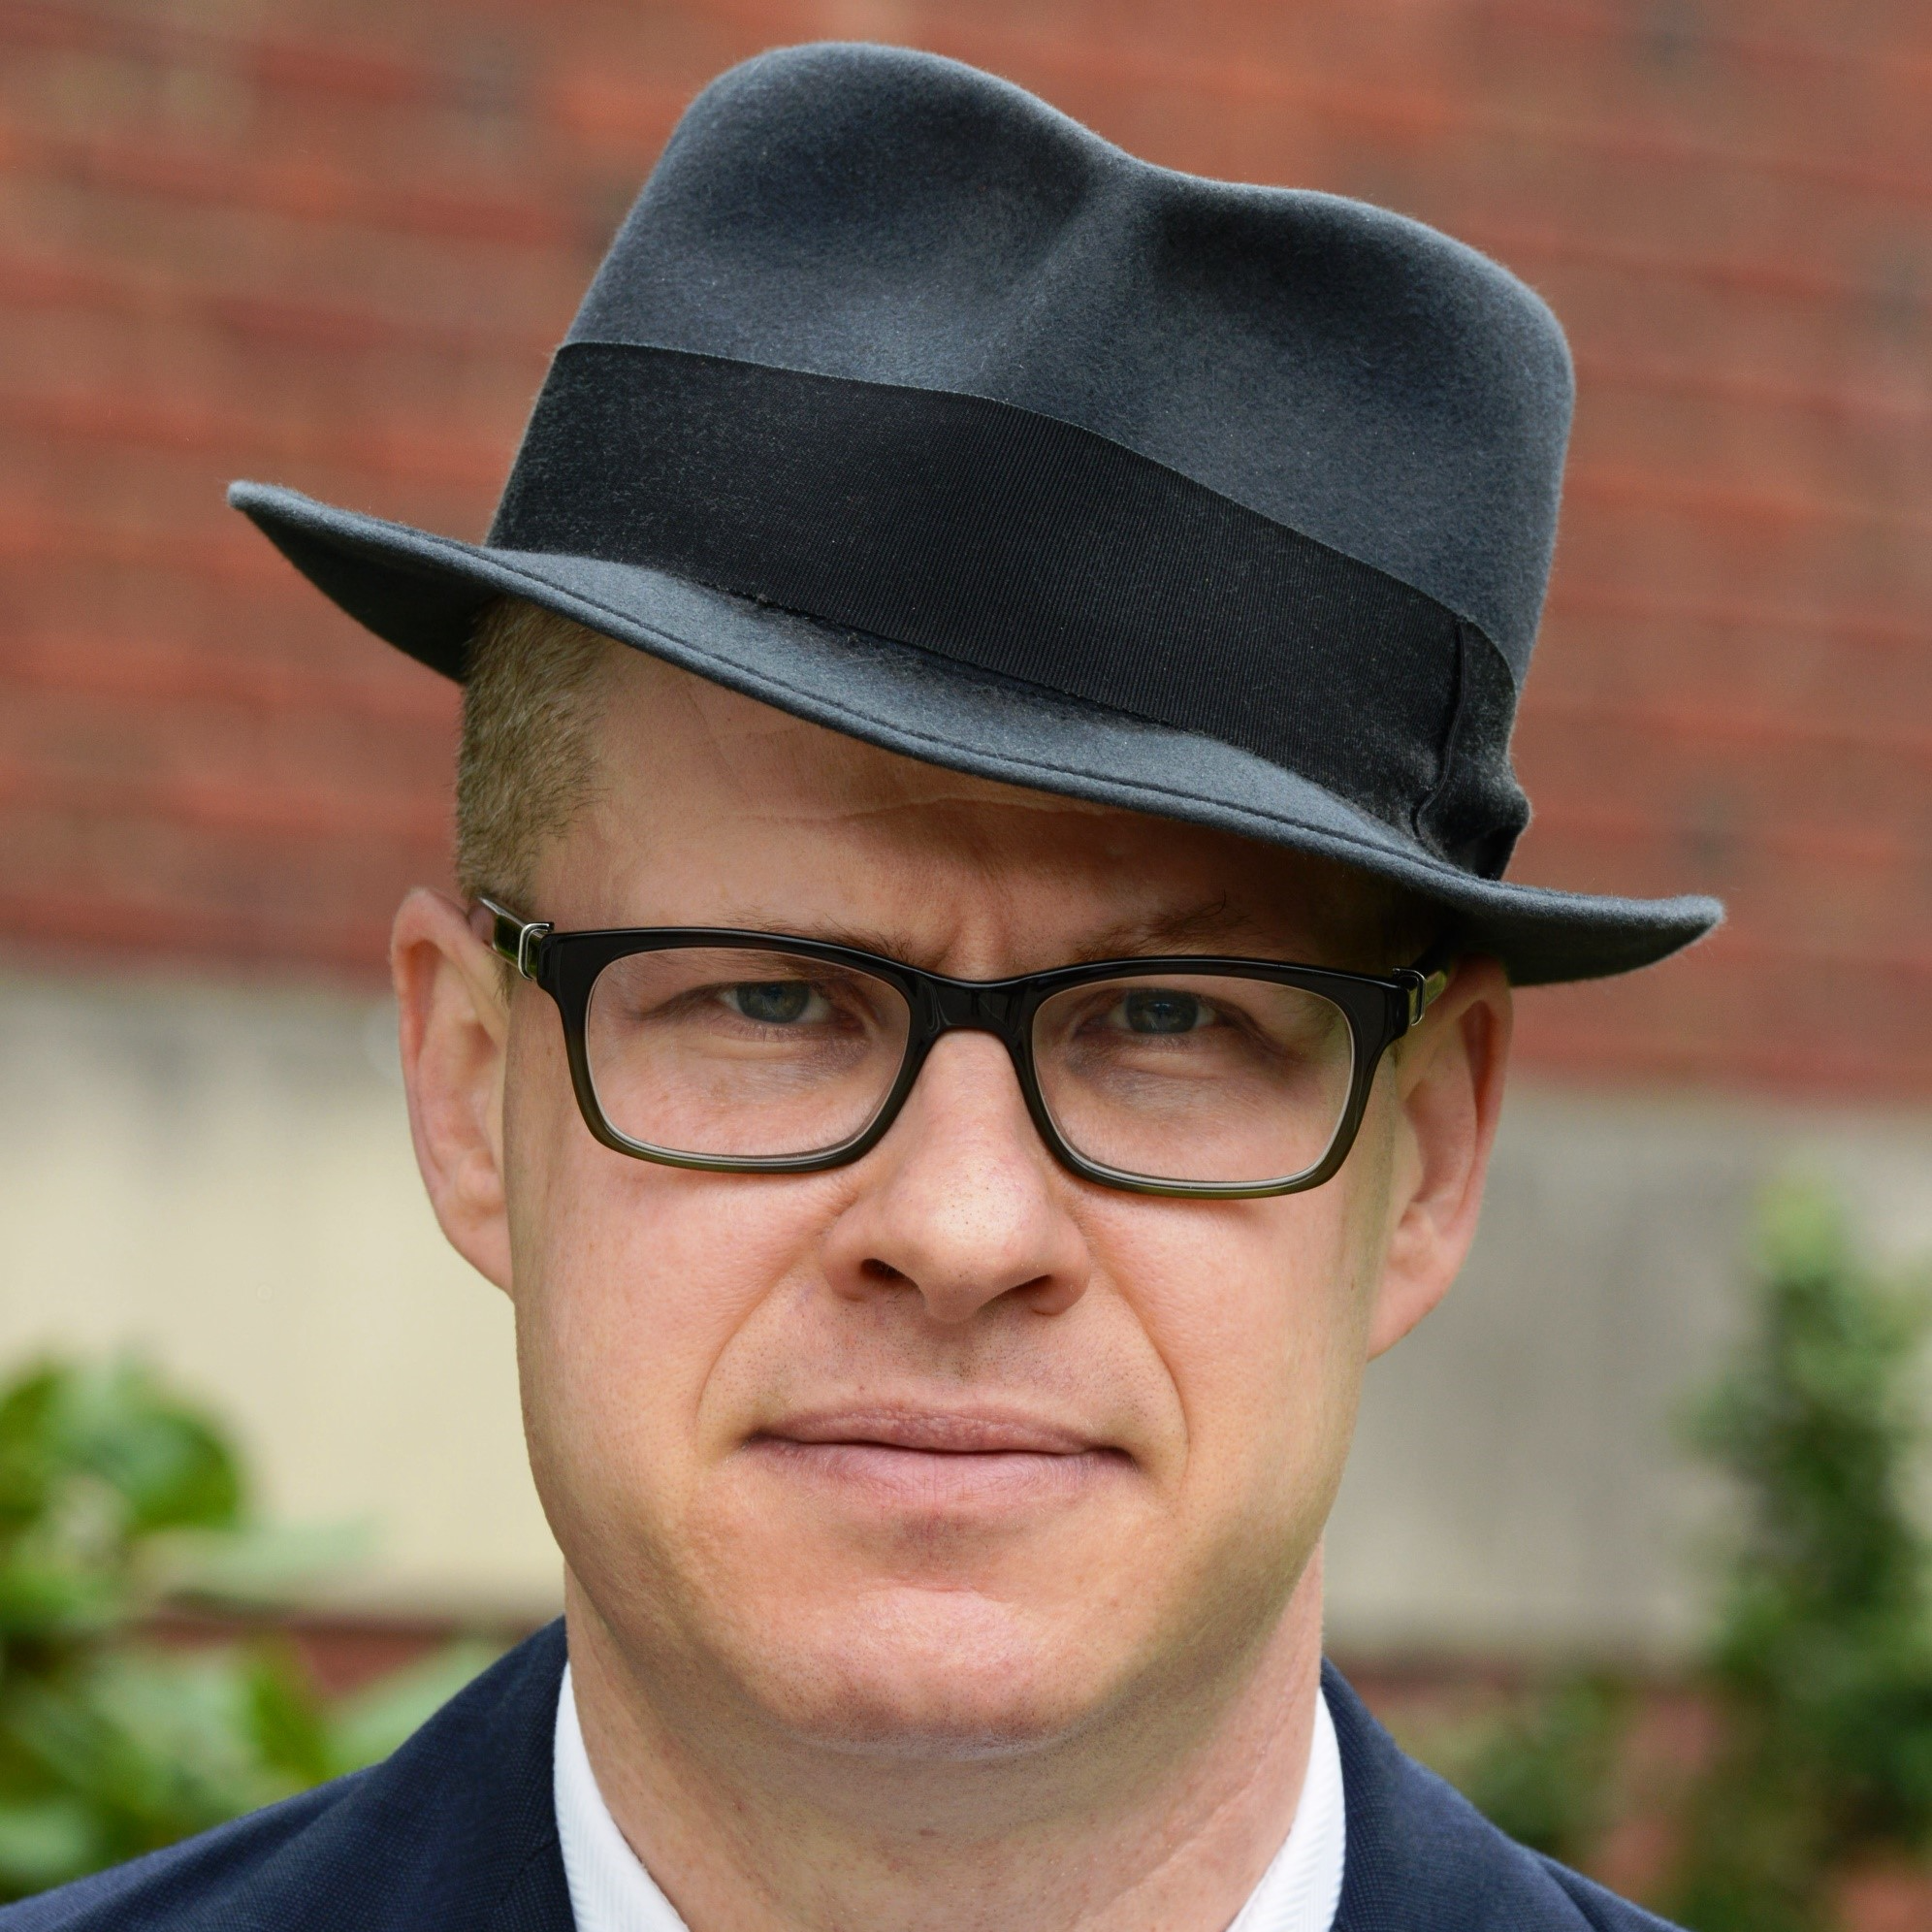 Max Boot: A diverse student body adds value to campus life